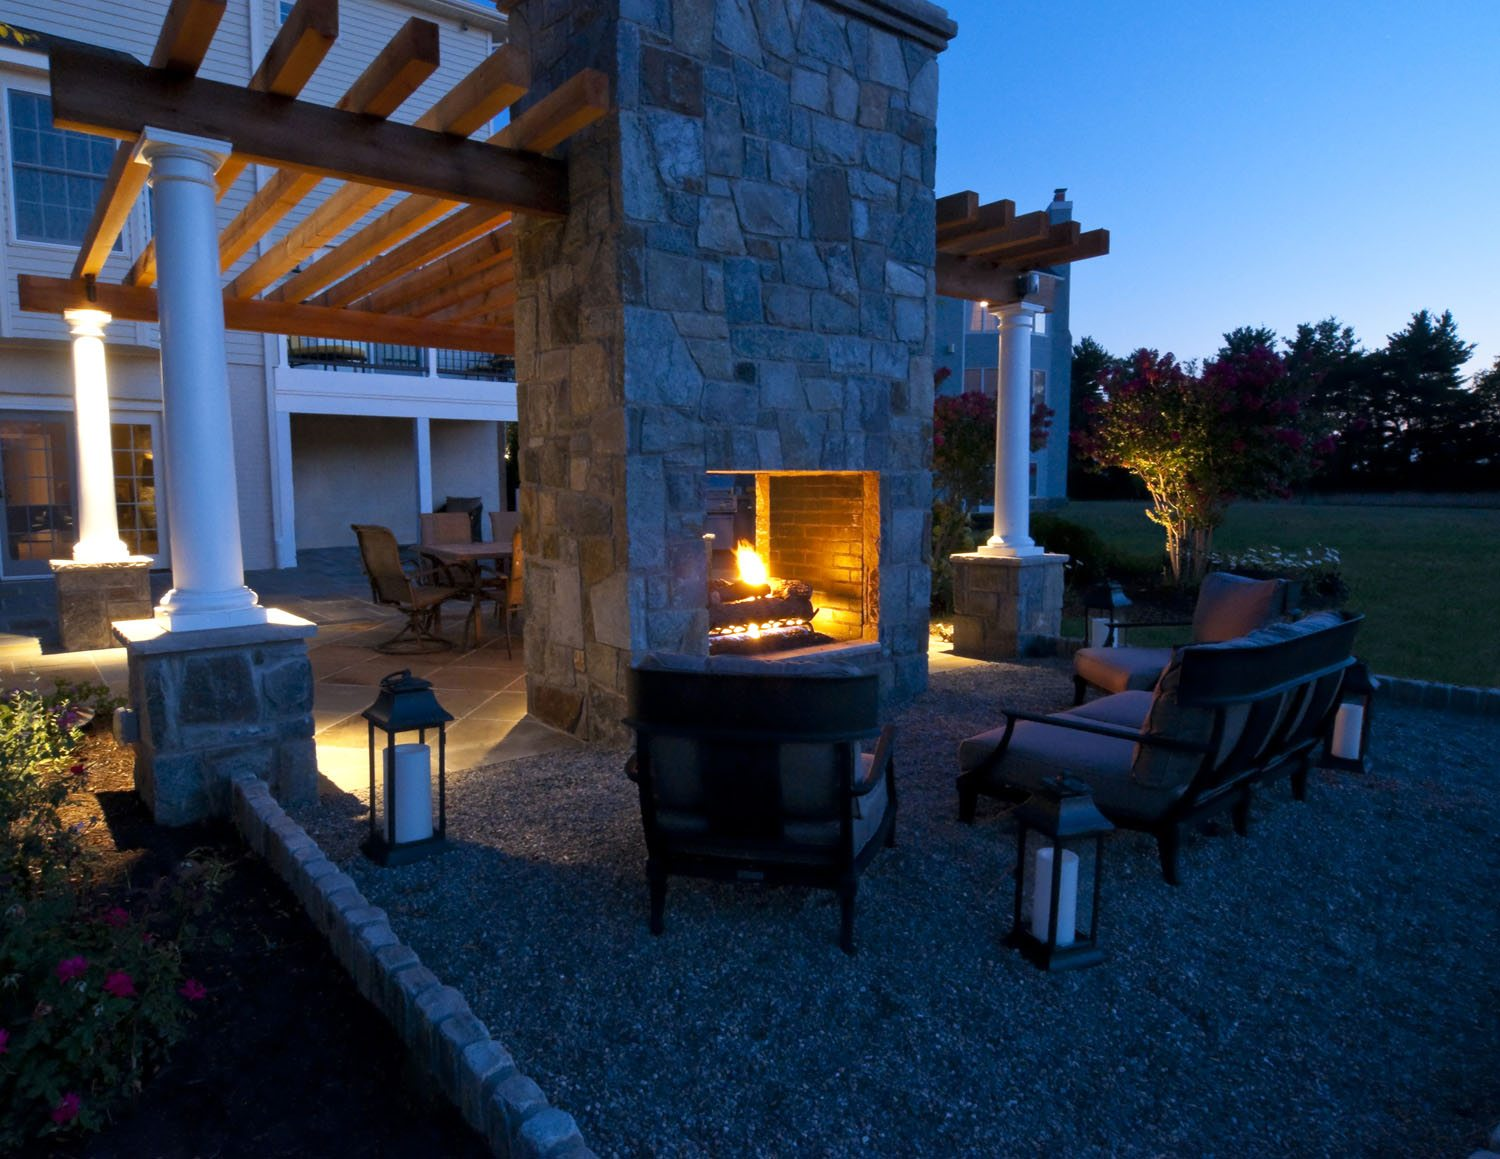 Autumn Night Fire Pit : Fall nights are better around a fire pit clearwater